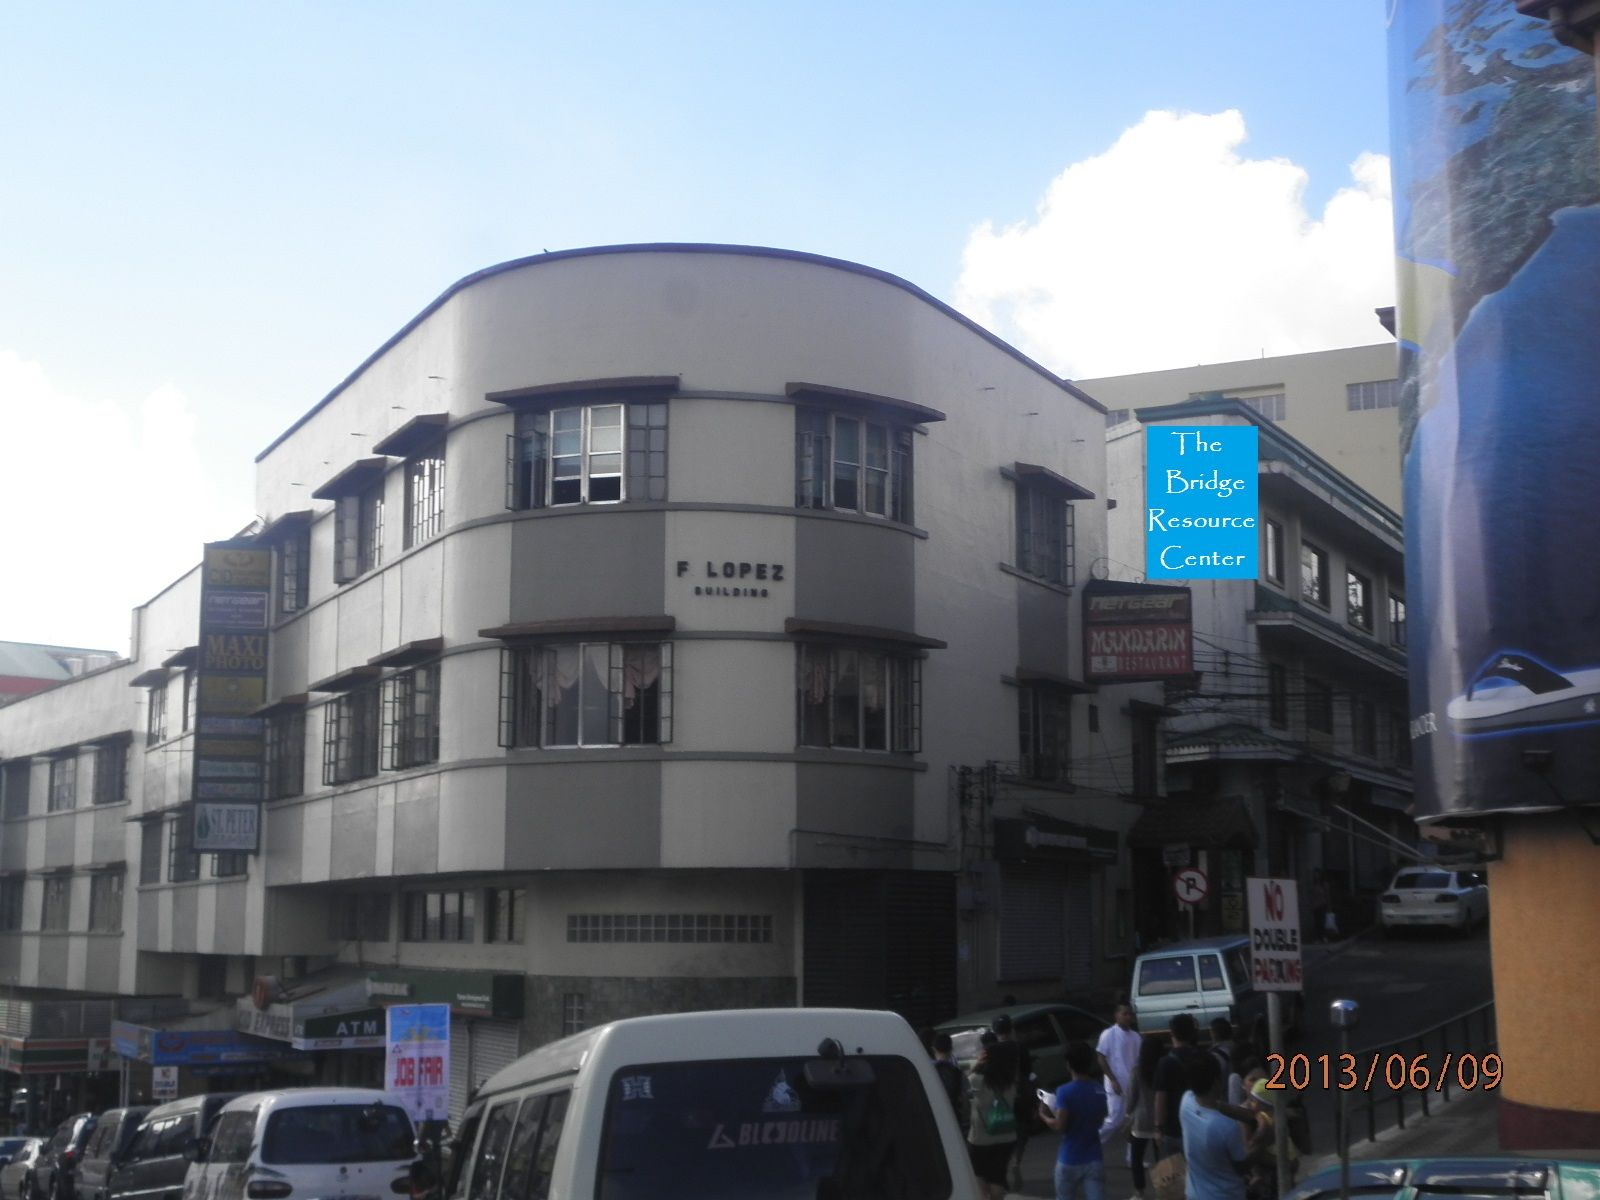 Room d 204 lopez building session road corner assumption road room d 204 lopez building session road corner assumption road baguio city benguet solutioingenieria Image collections